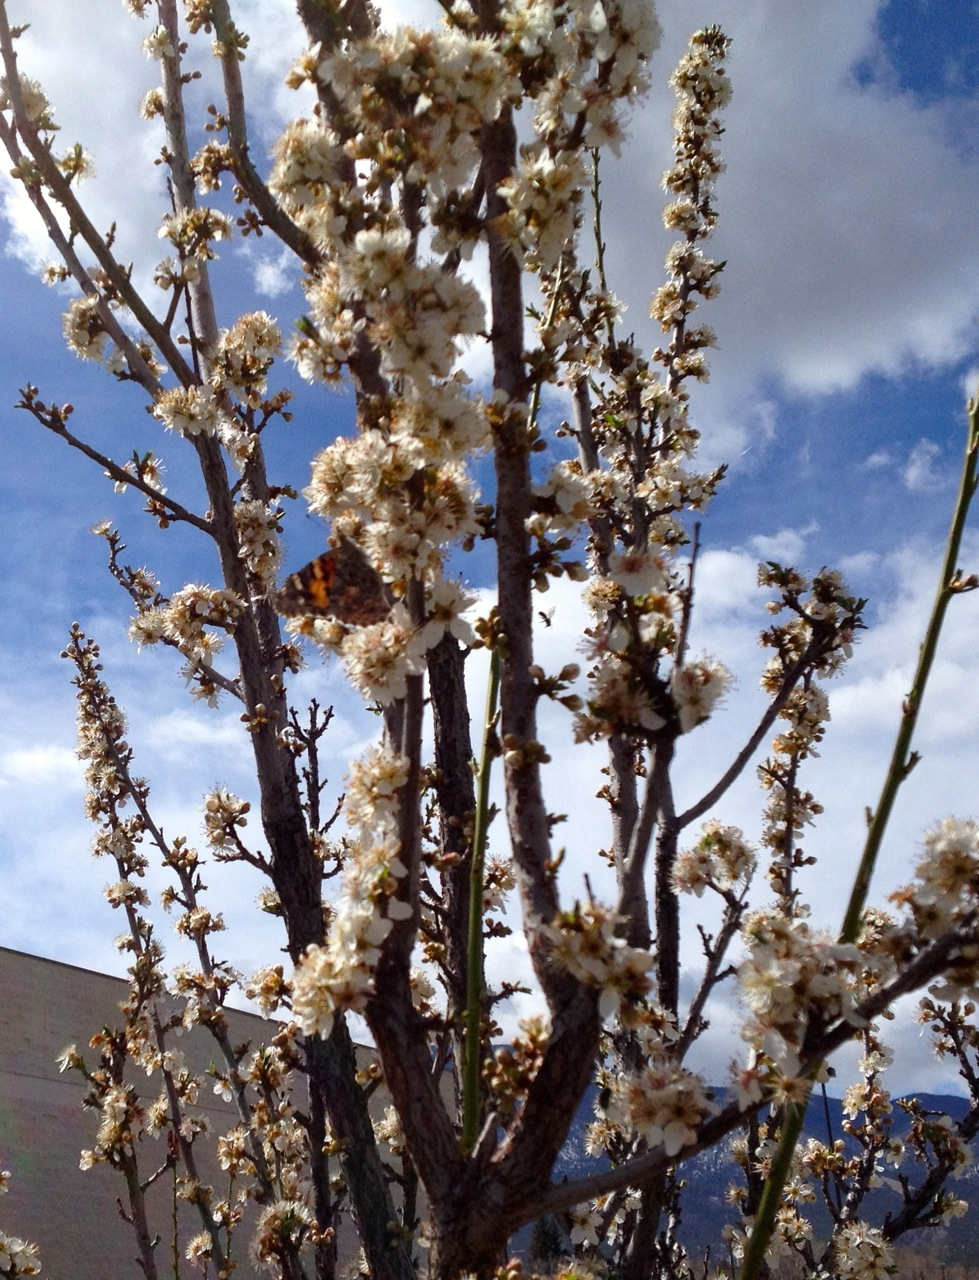 Sand cherry flowers abuzz with native bees and one early-flying painted lady butterfly.